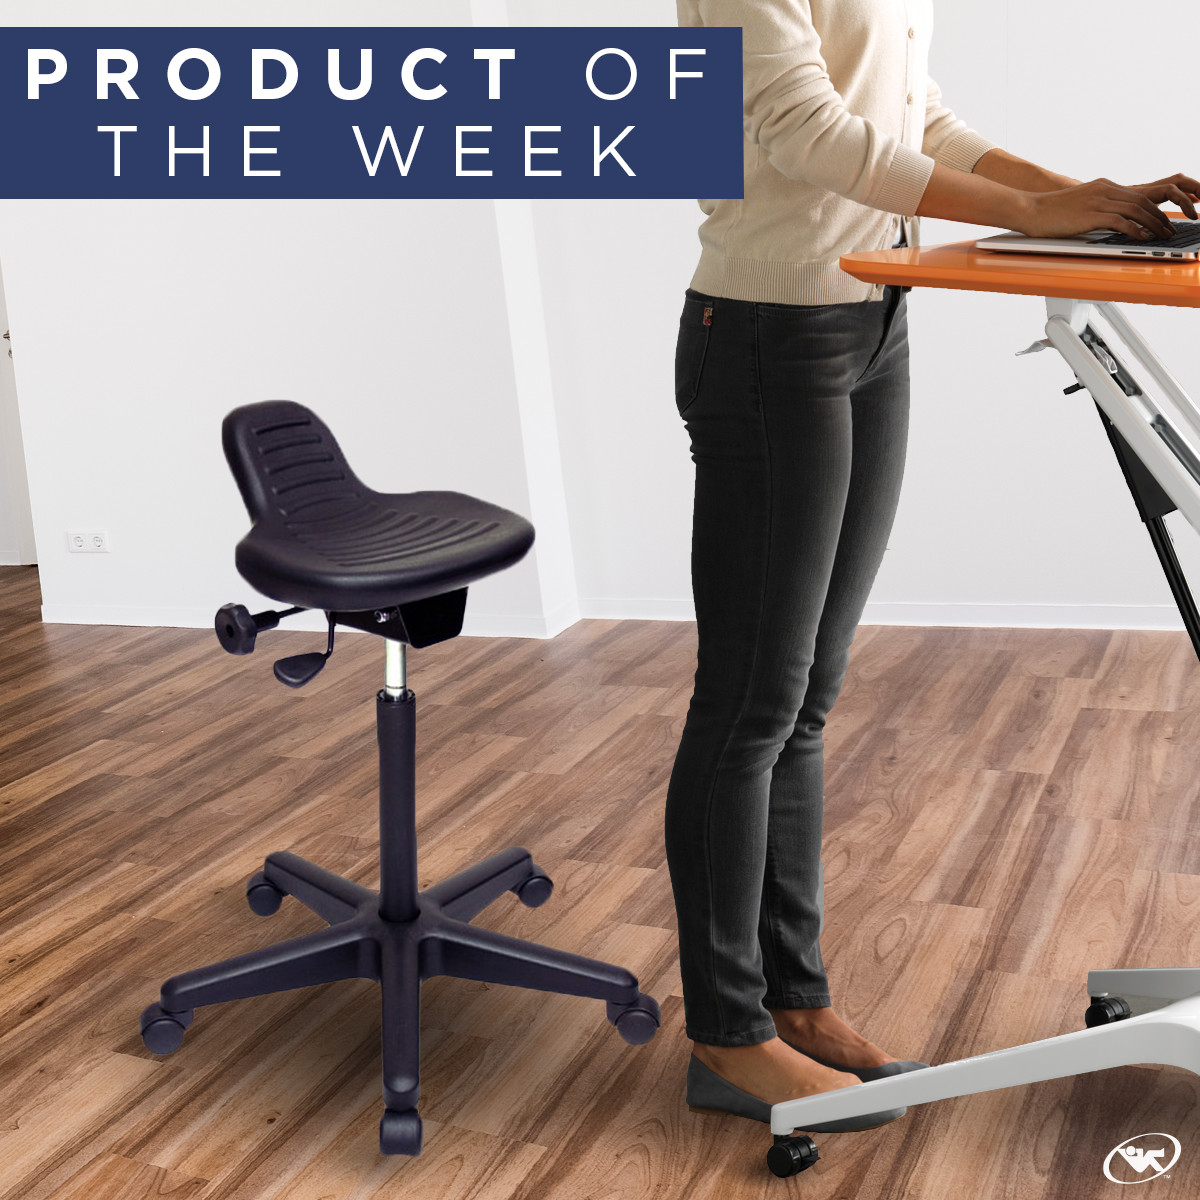 Improve your posture while you work with the BetterPosture